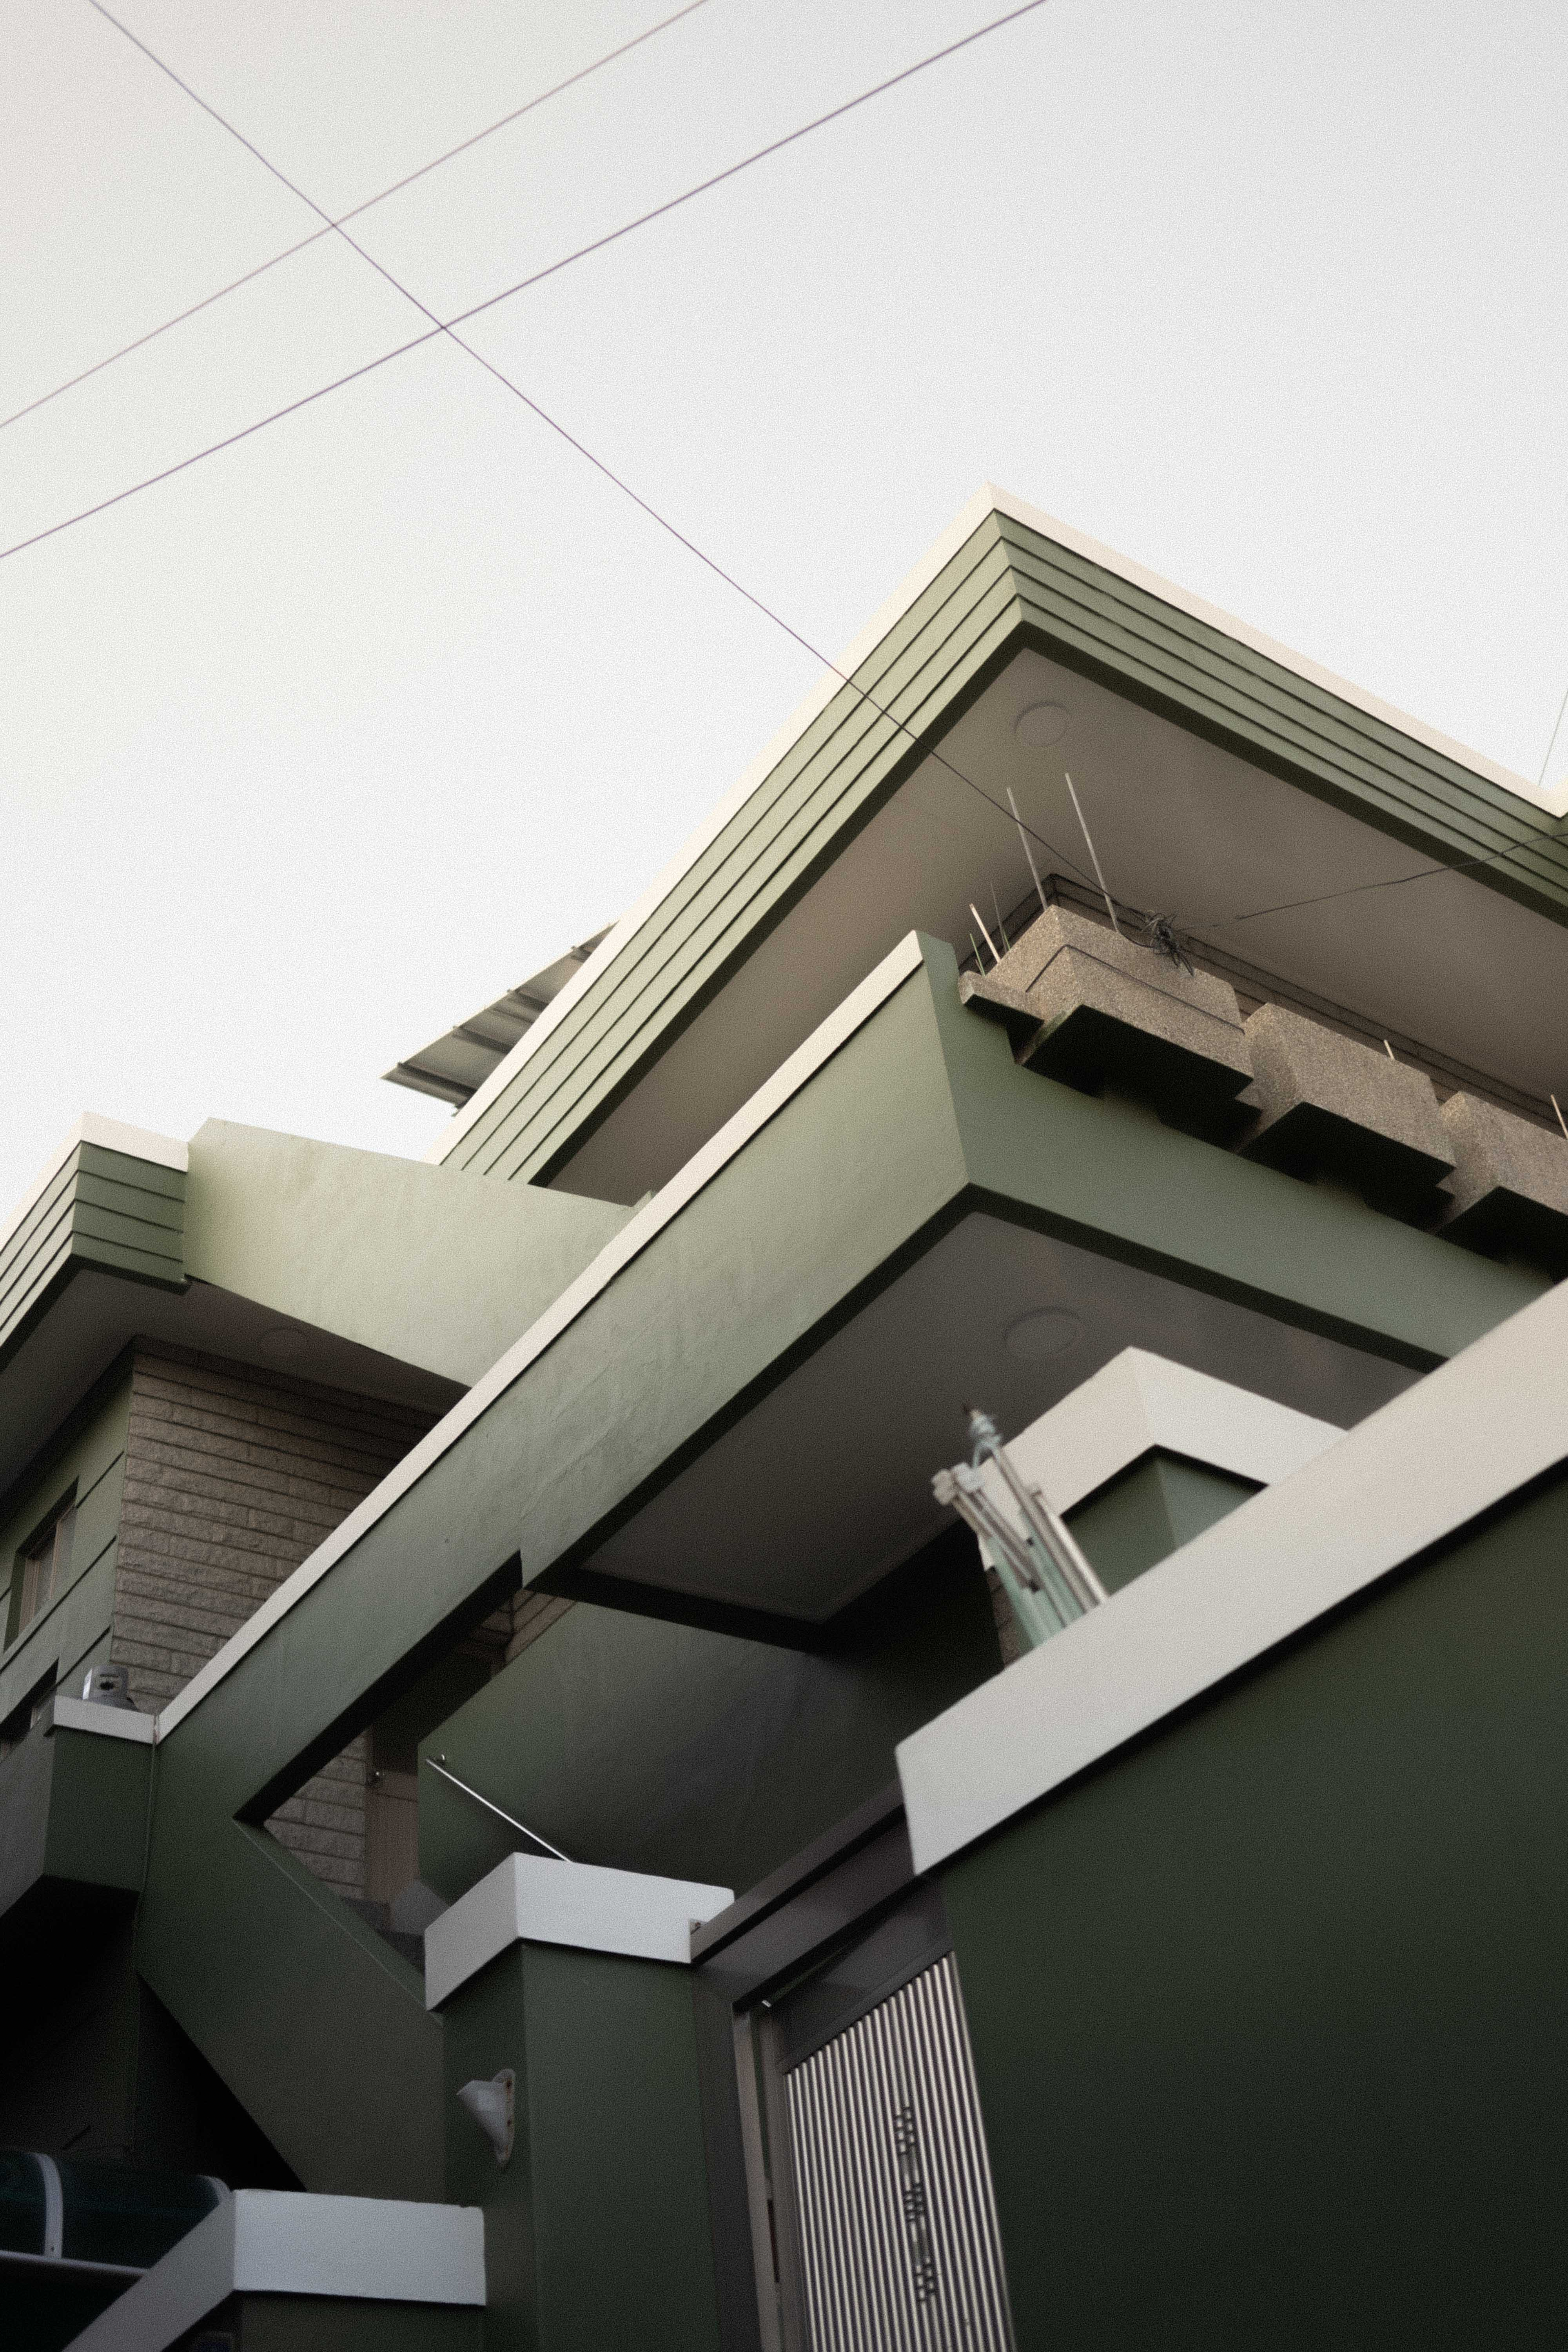 Low Angle View of Balcony of House